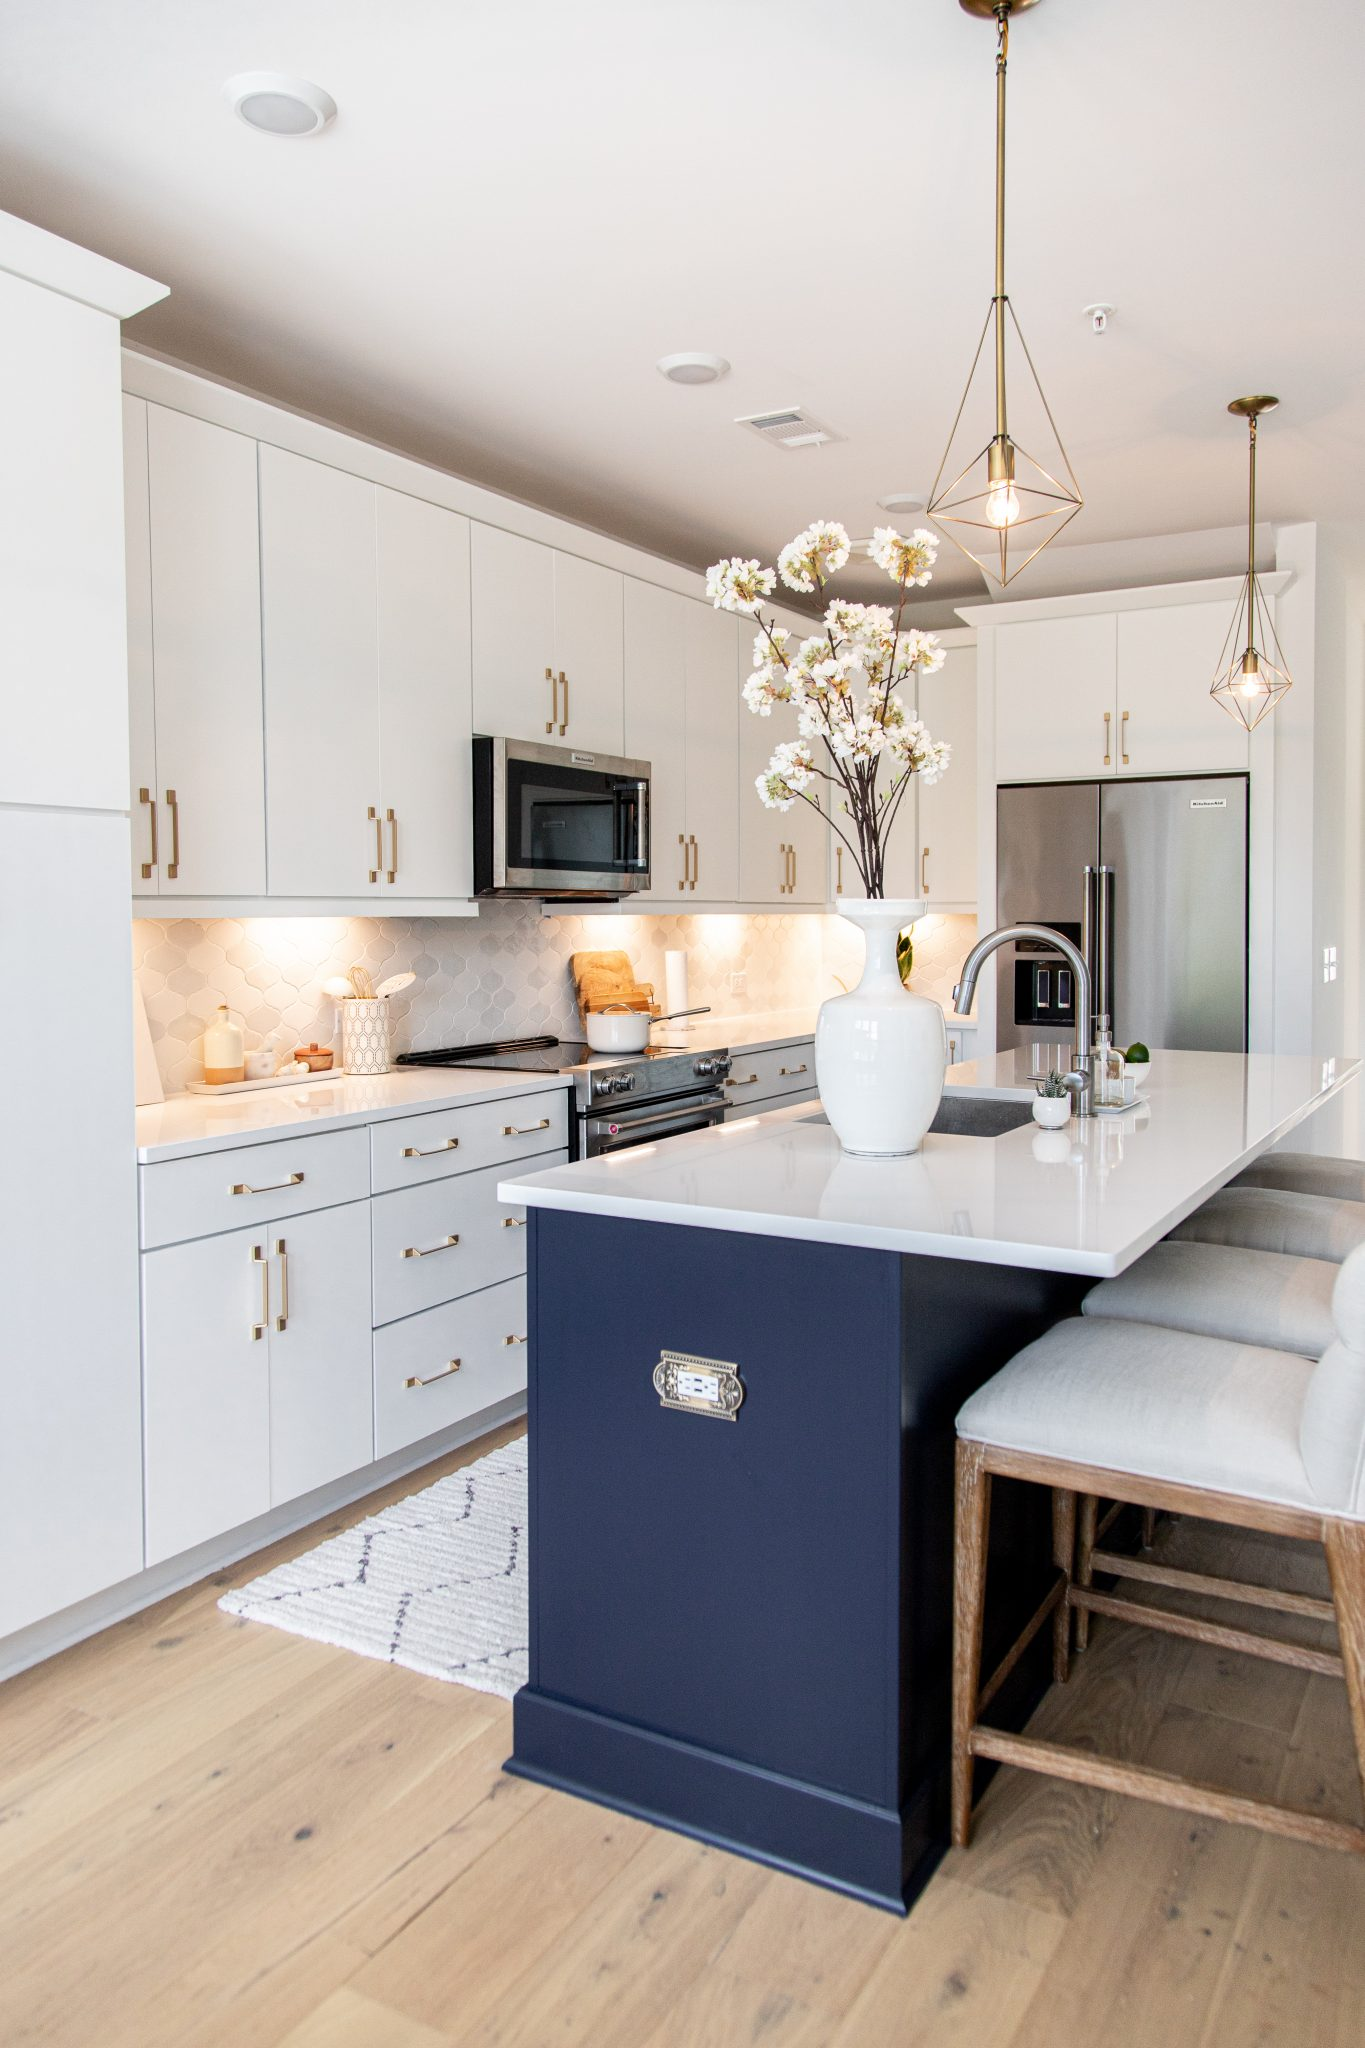 Bright white kitchen, kitchen makeover, kitchen transformation, schaub and company san marco collection, frontgate review, fontgate Gramercy Bar and Counter Stool in Sandstone, kitchen renovation, luxury kitchen design, kitchen before and after